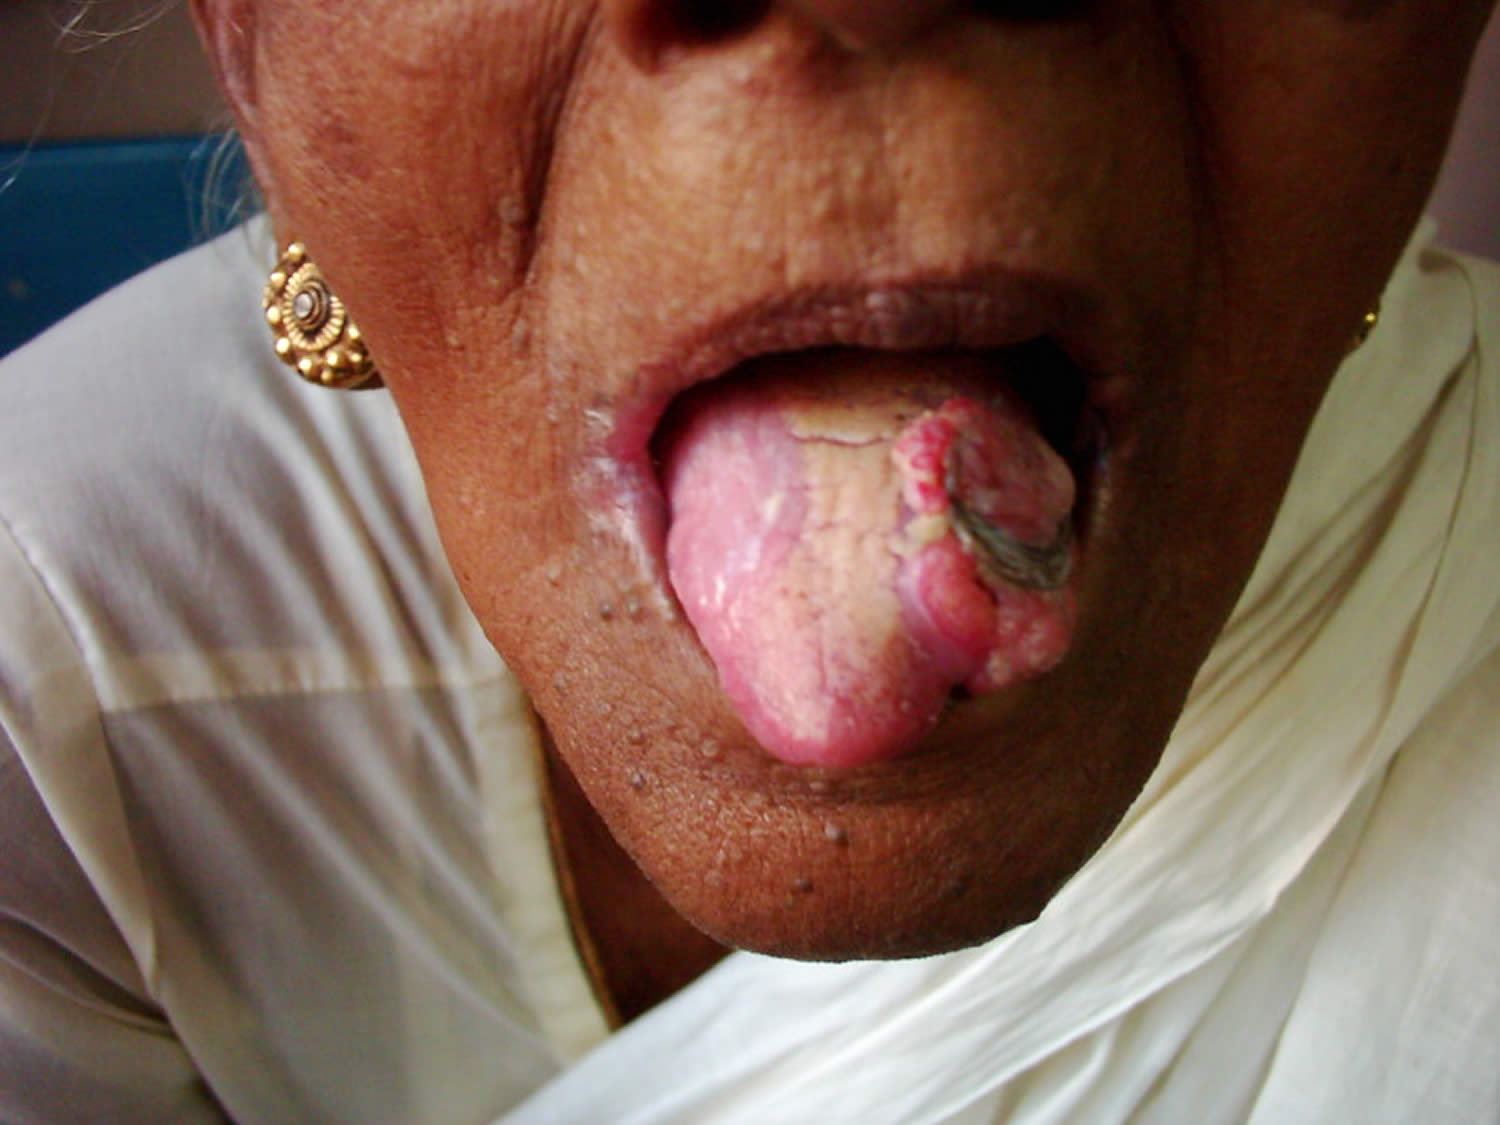 Tongue Bumps: Enlarged Papillae and Other